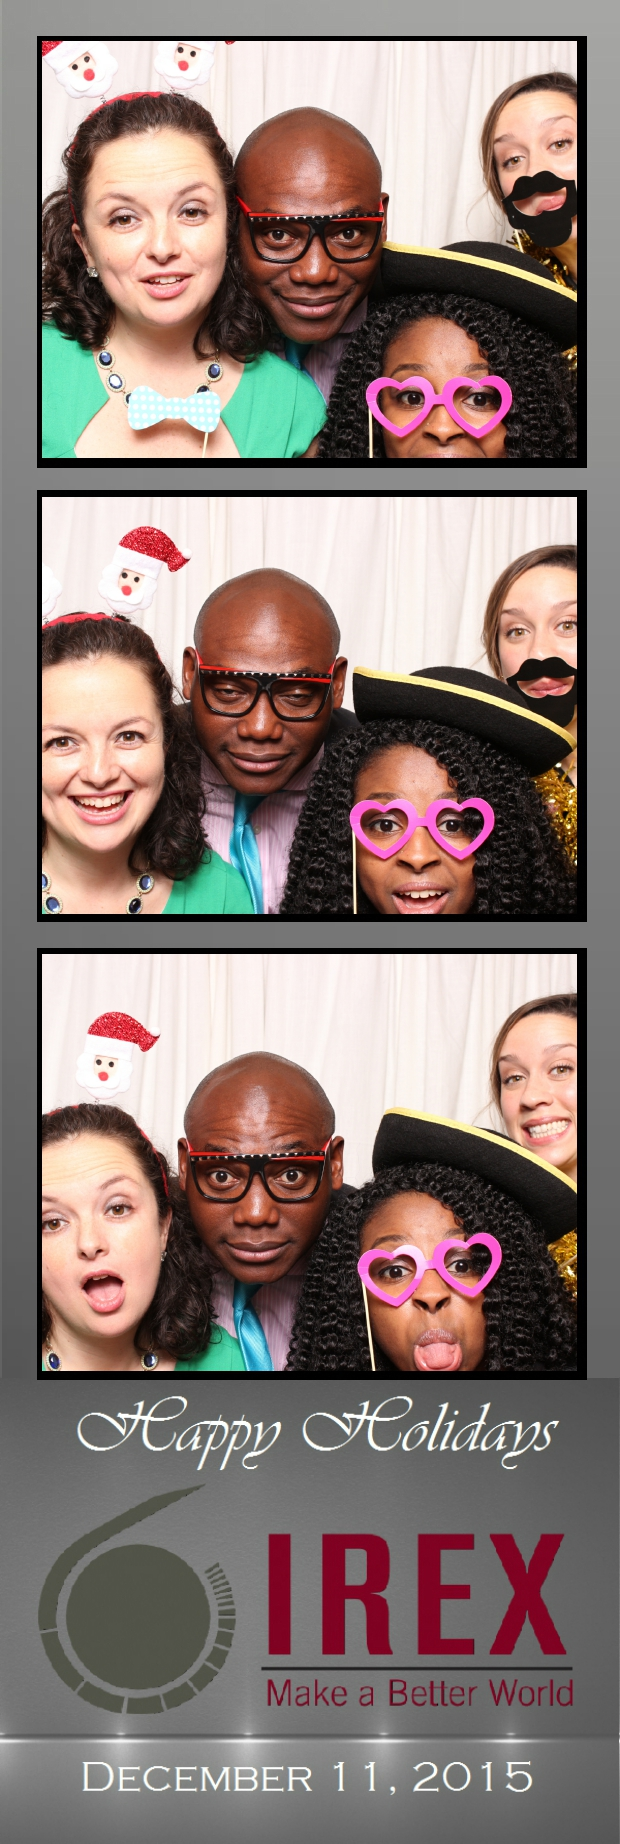 Guest House Events Photo Booth Strips IREX (63).jpg